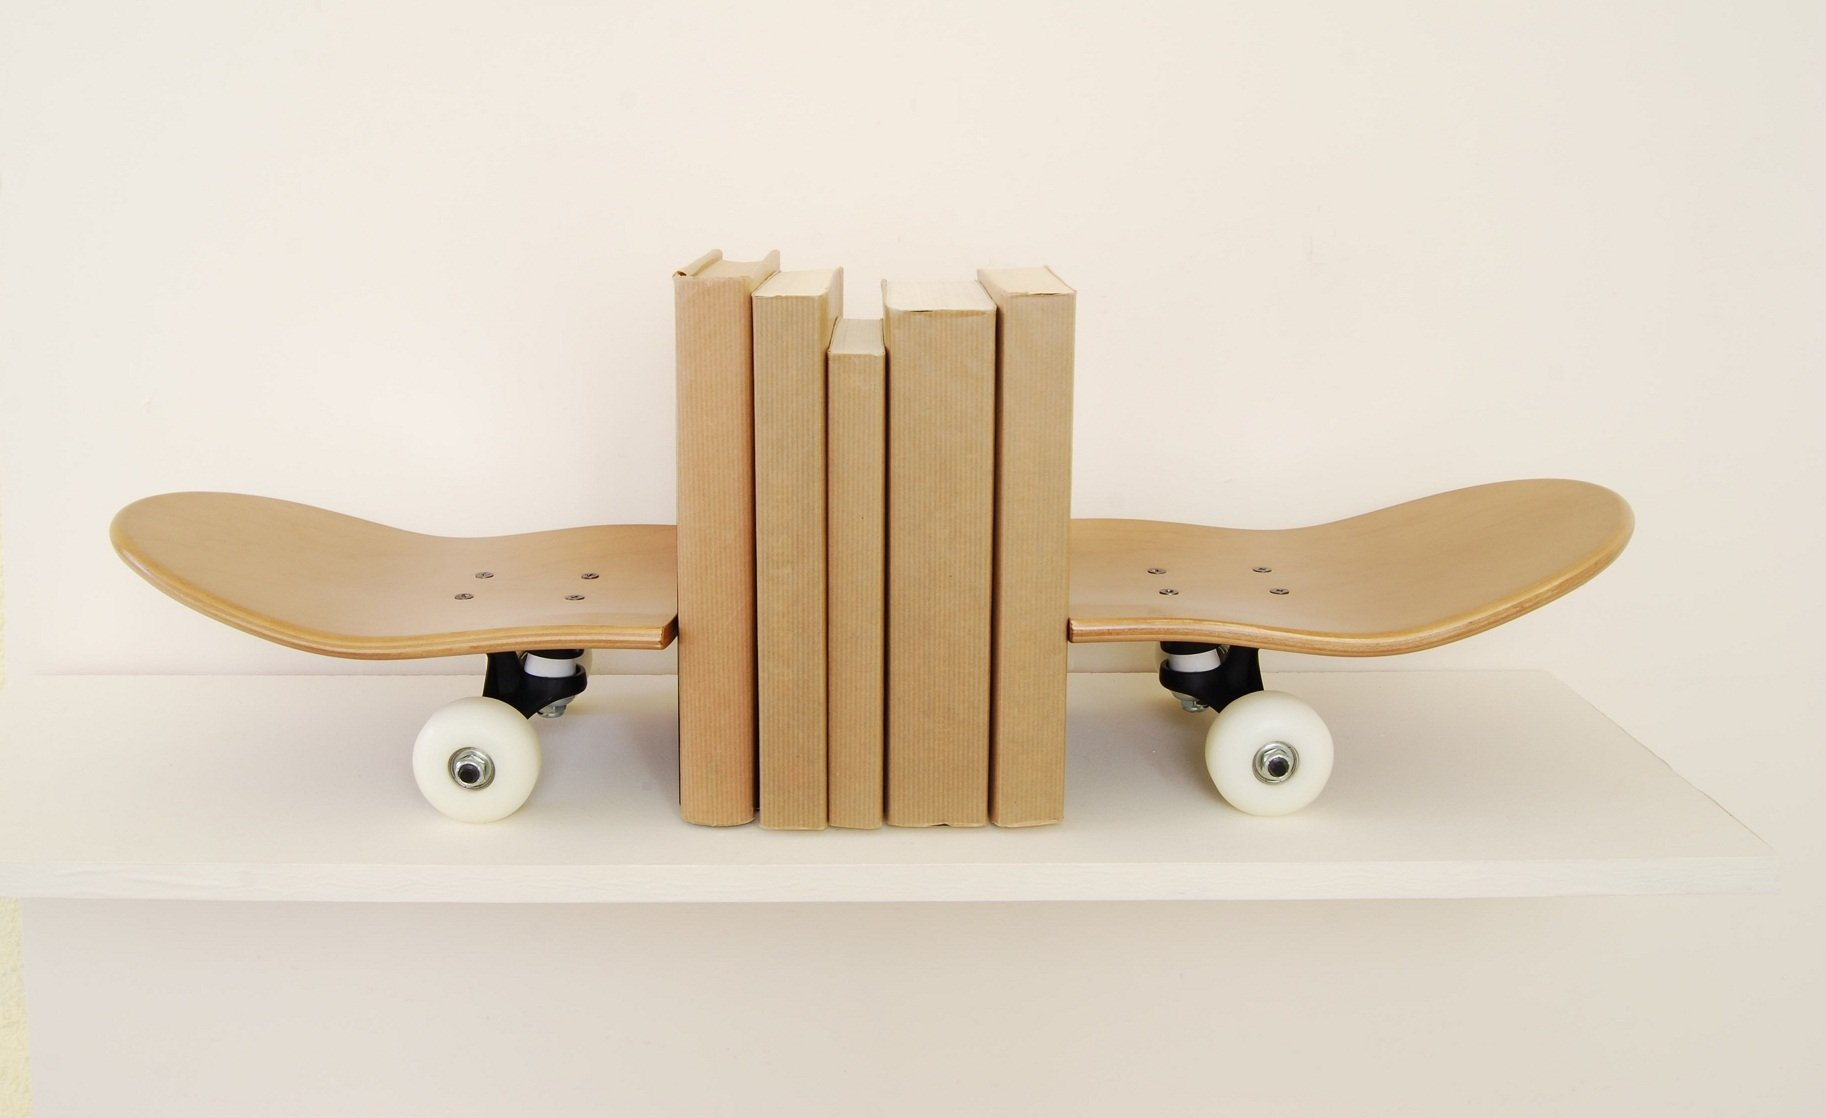 serre livres planche de skateboard par skate home. Black Bedroom Furniture Sets. Home Design Ideas